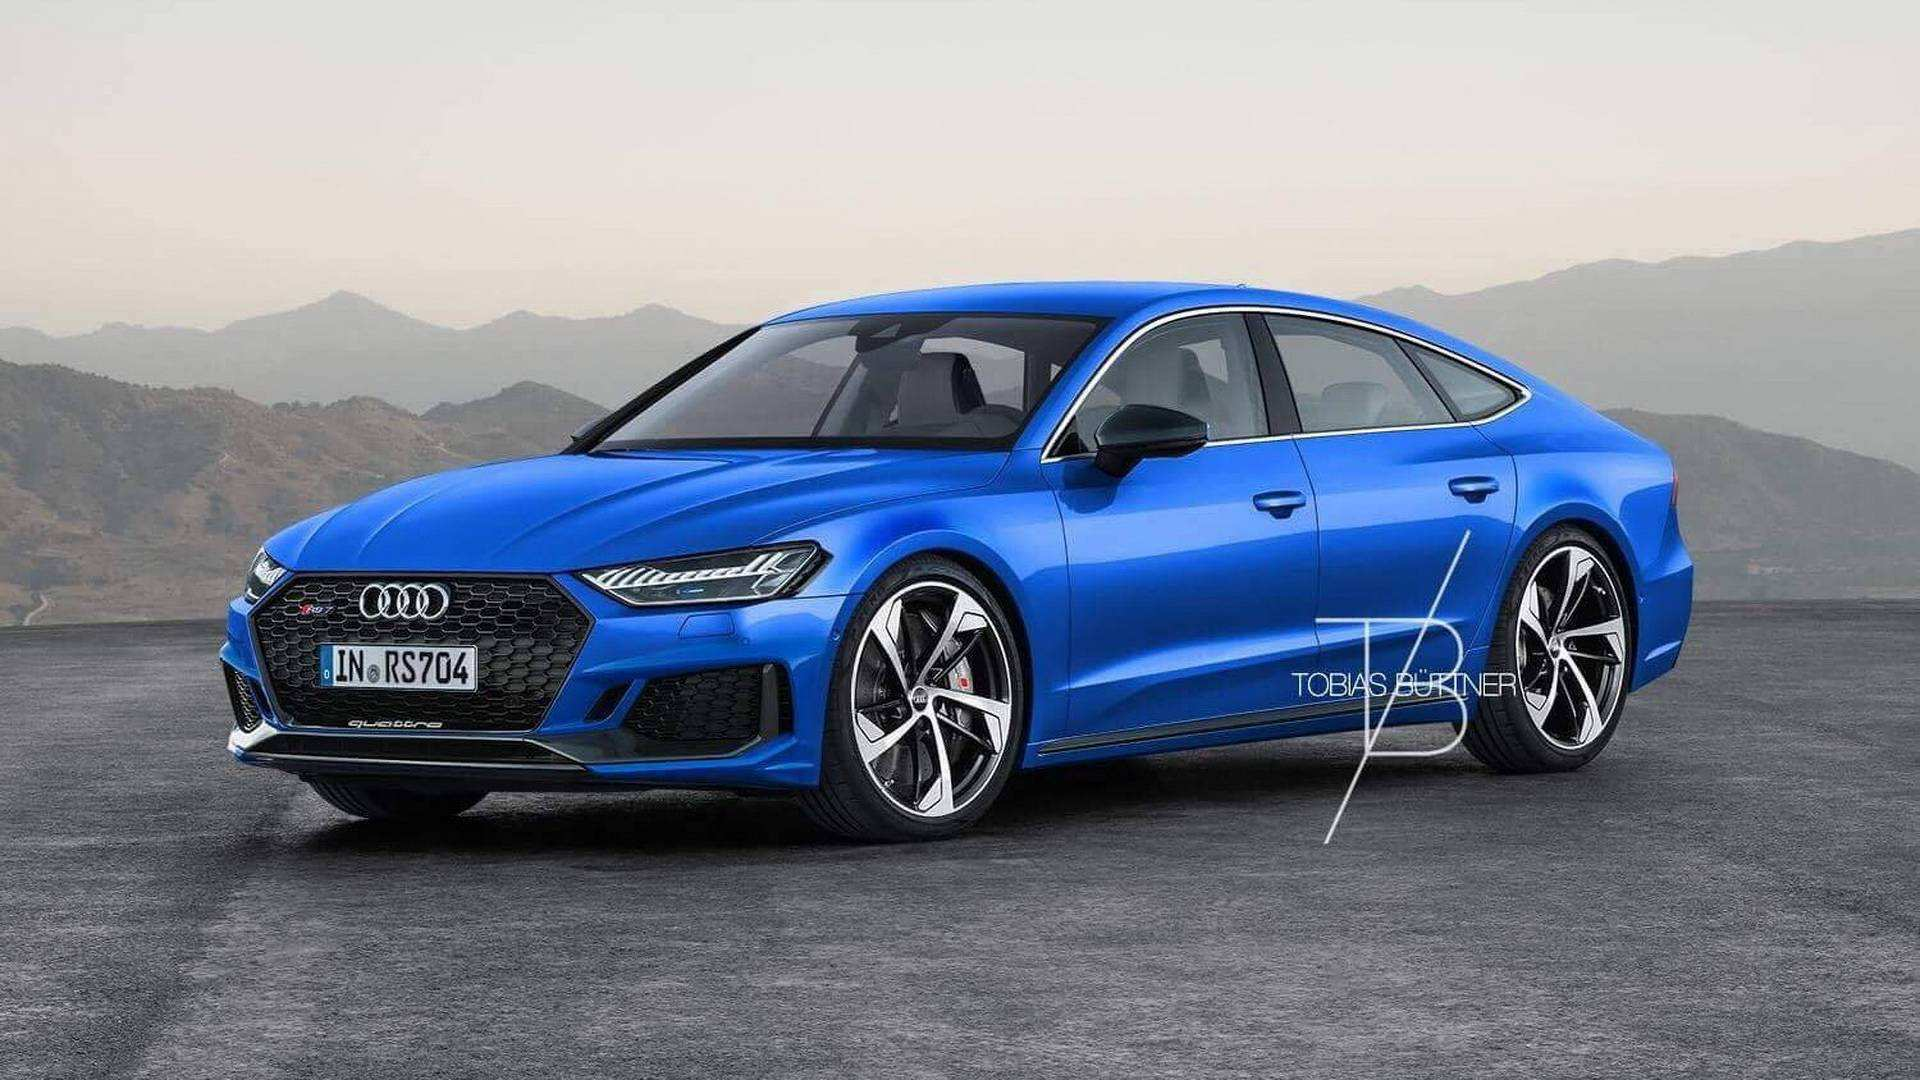 29 All New 2020 Audi A7 Colors Photos